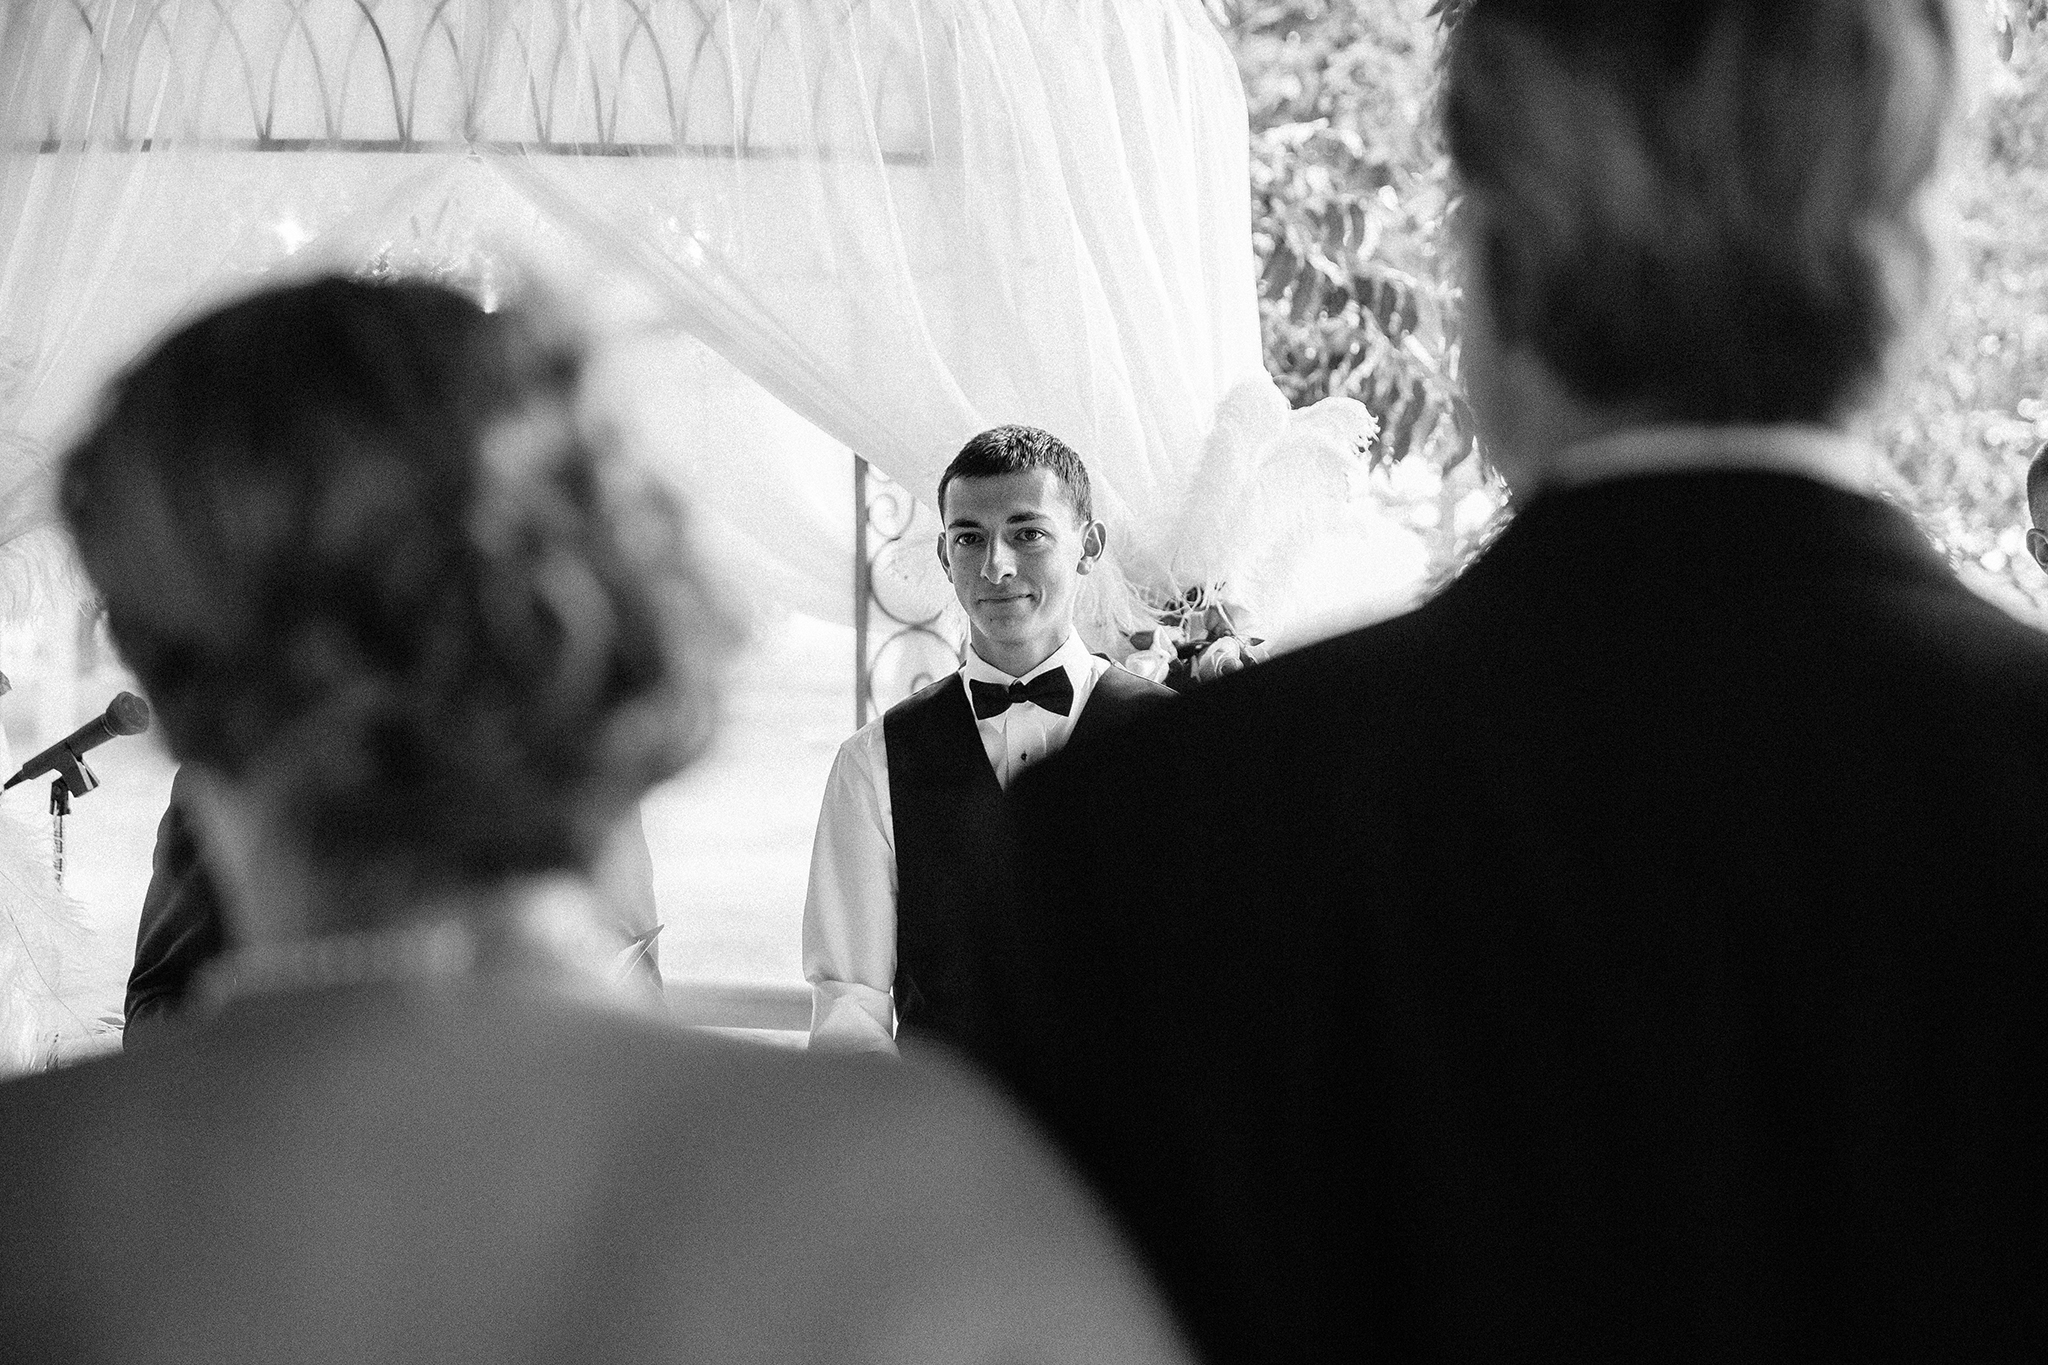 Bride and Groom, Father of the Bride, Wedding Ceremony